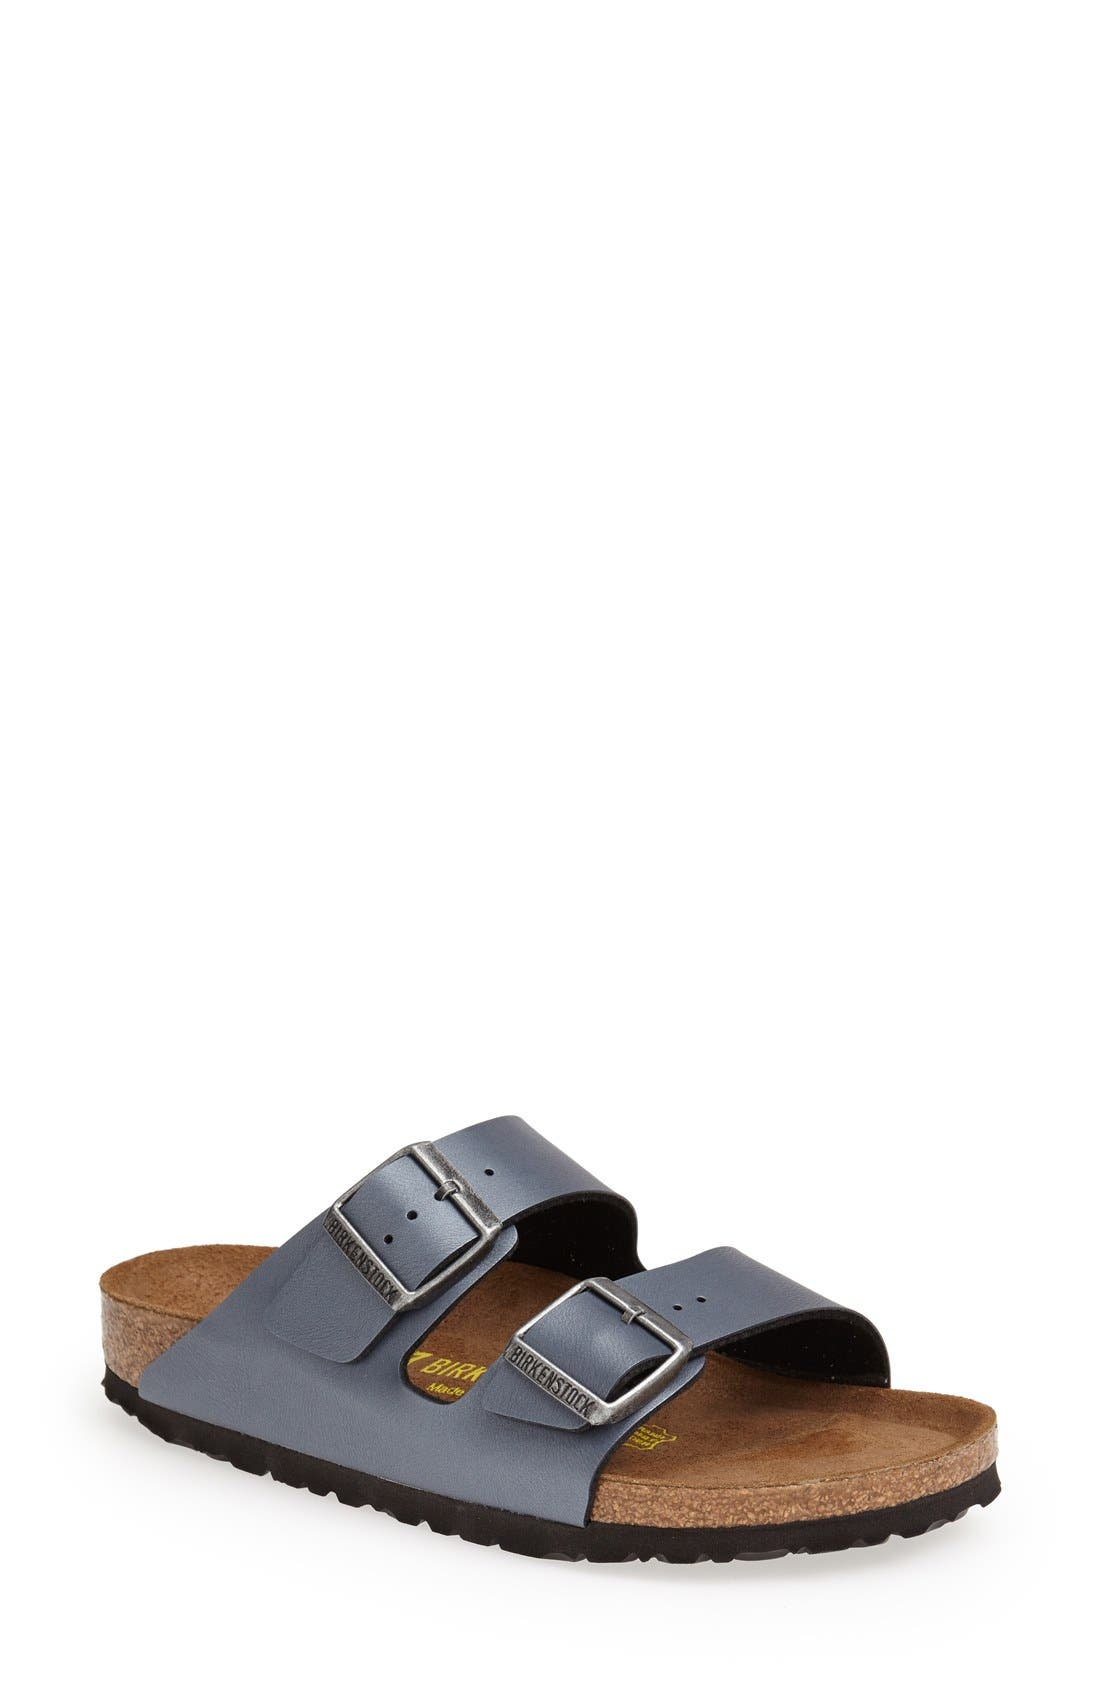 'Arizona Birko-Flor' Soft Footbed Sandal,                             Main thumbnail 2, color,